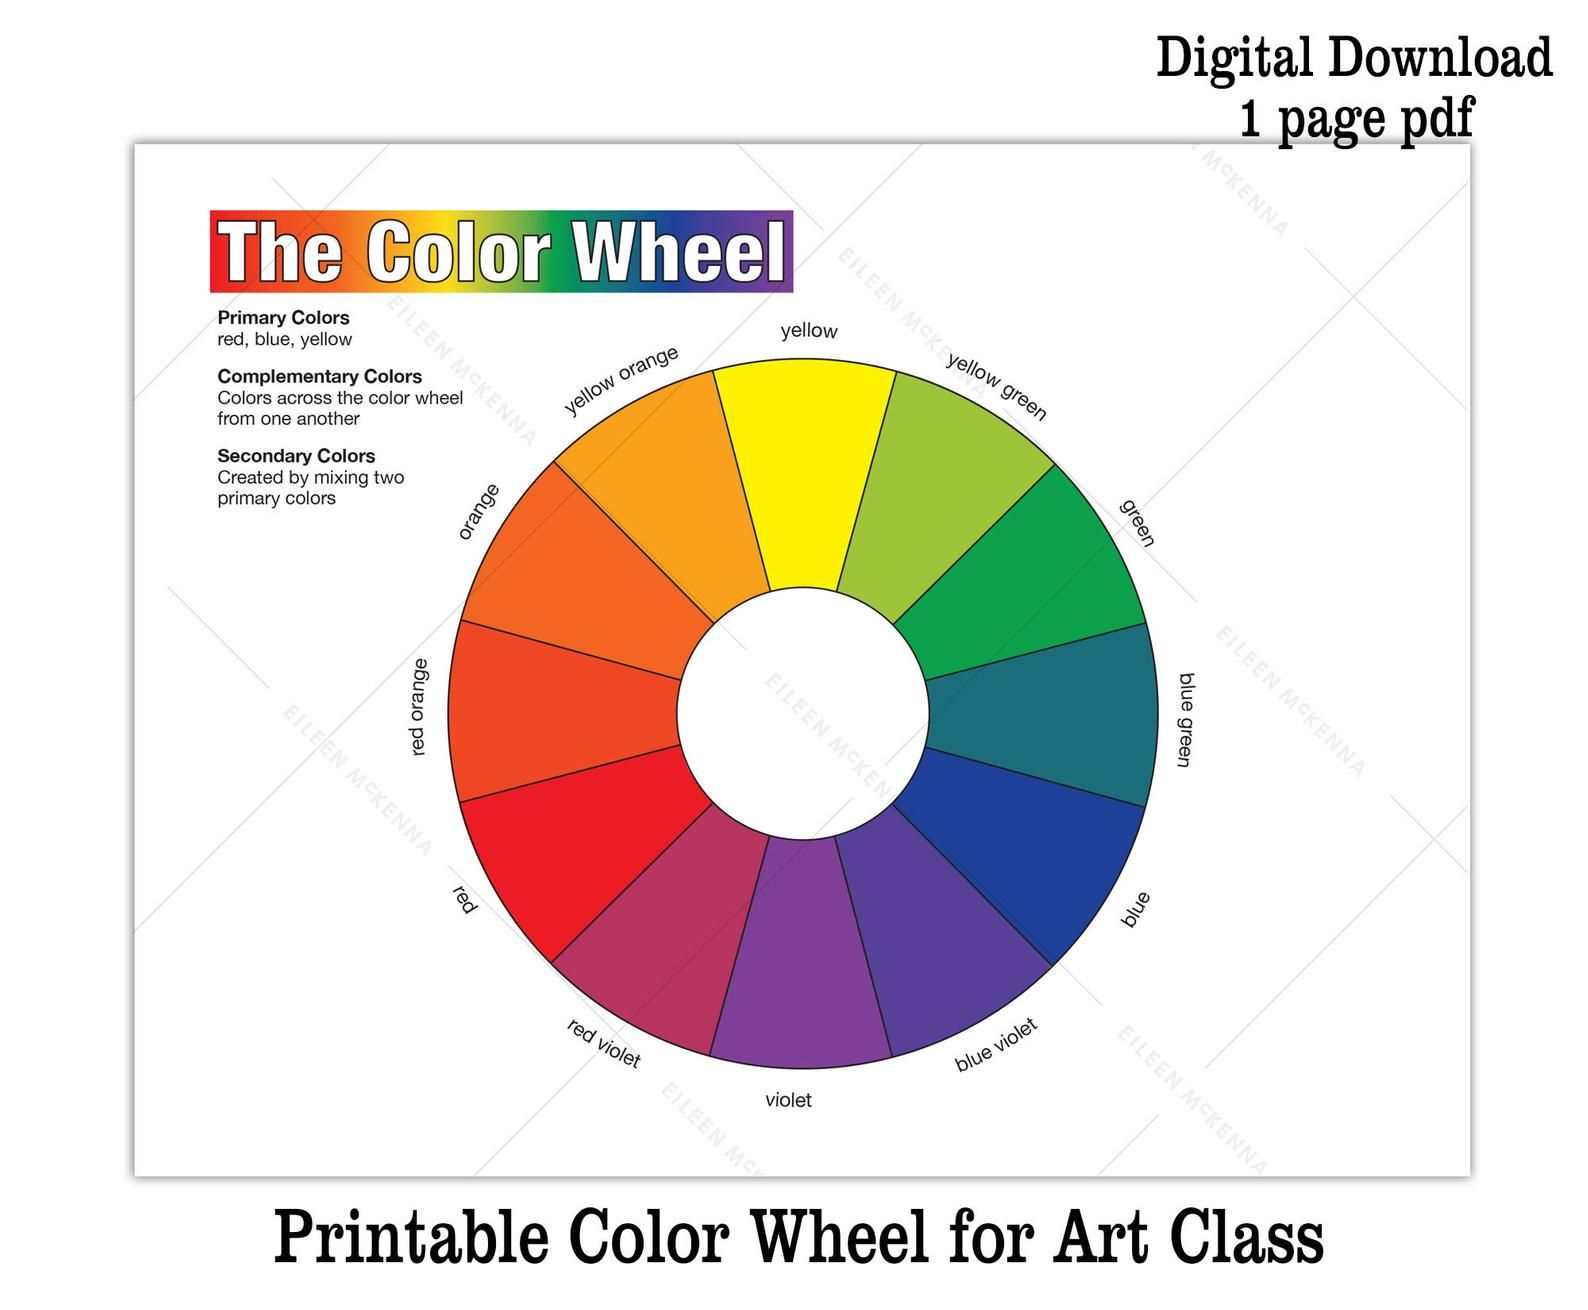 Printable Color Wheel Kids Art Class Teaching Asset